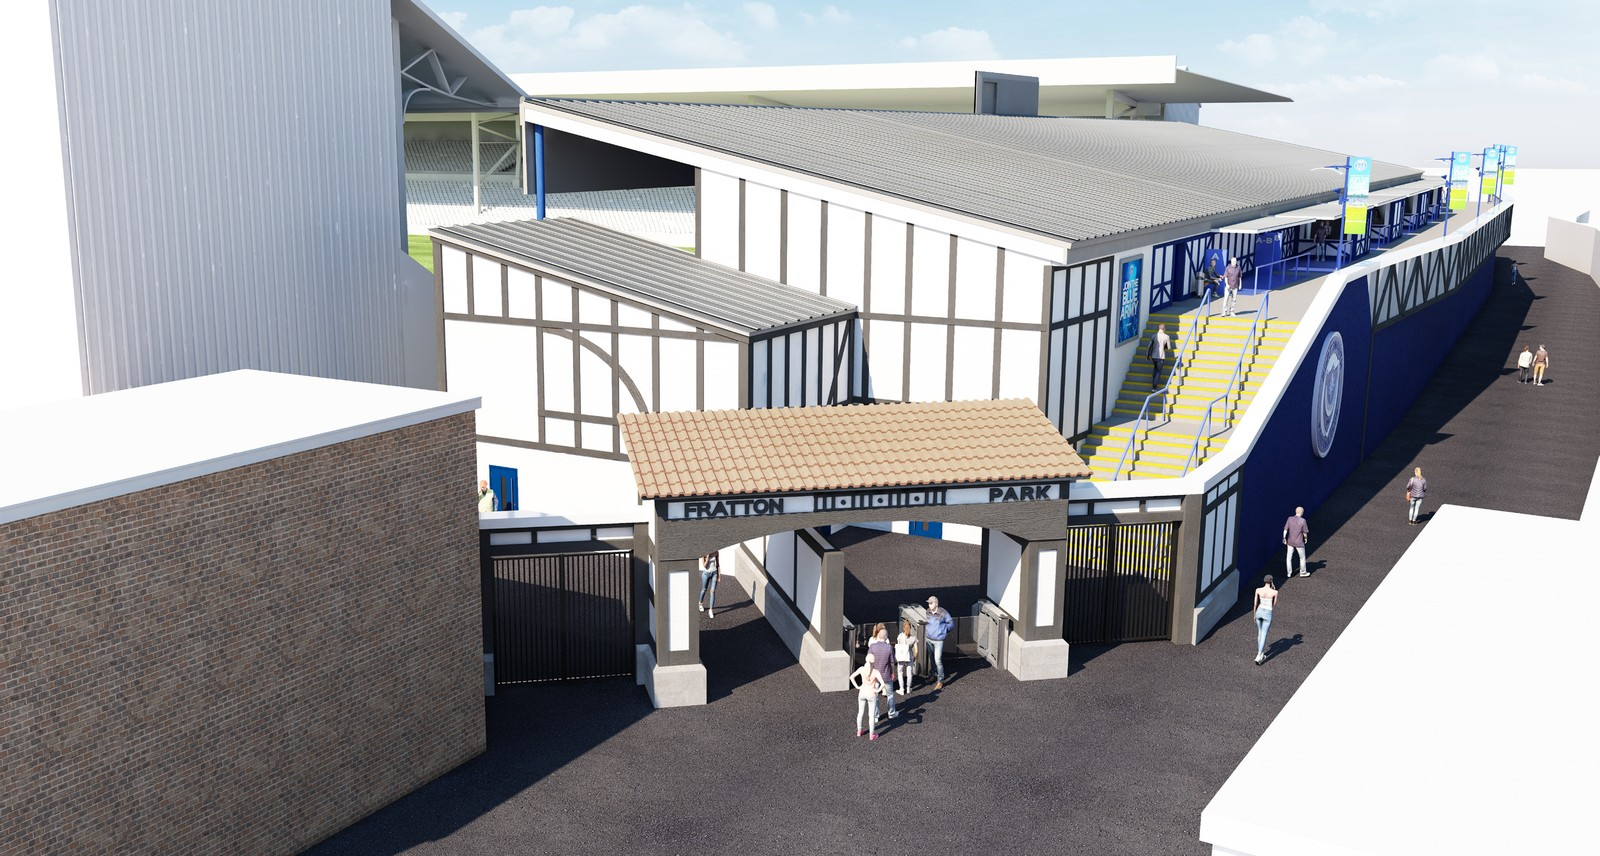 Fratton Park expansion plans